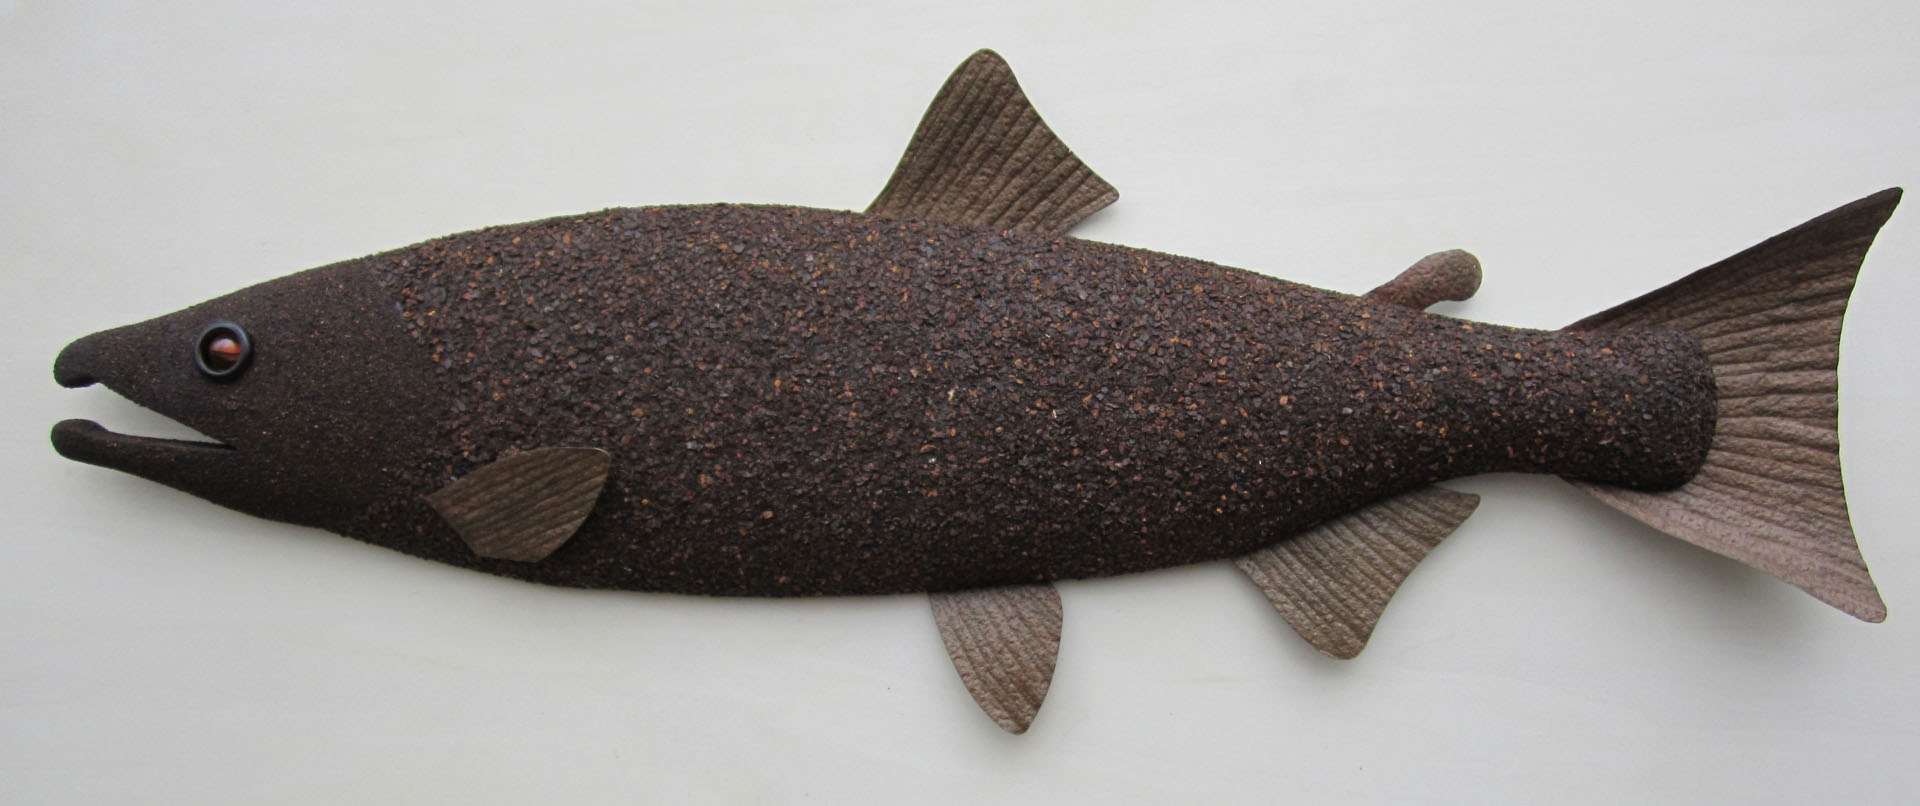 hand crafted wooden fish sculpture with rust texture coating